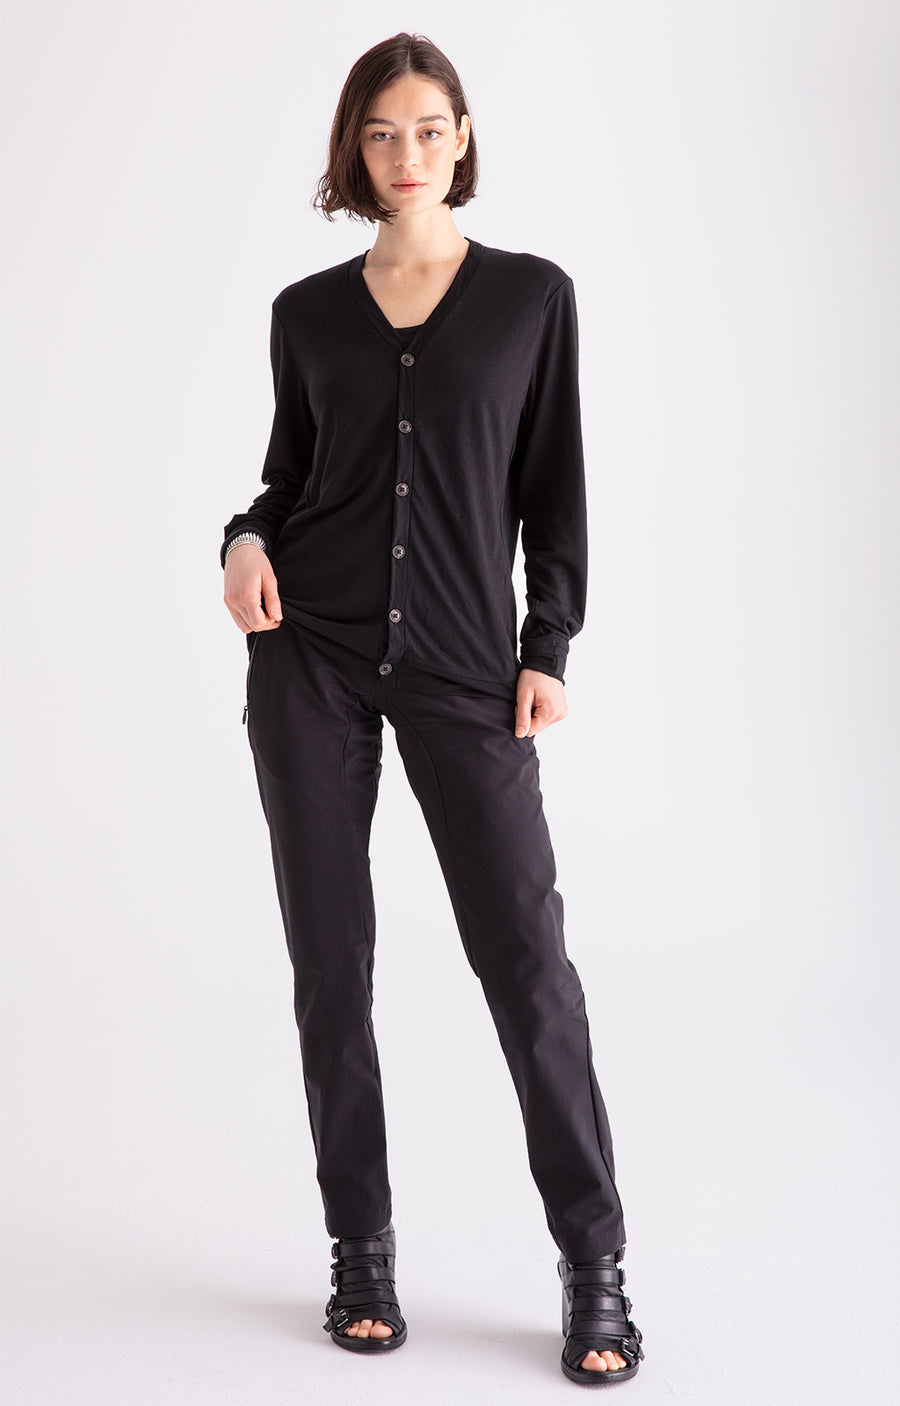 Minimalist - Perfectly Cut Slim-Fit Traveler Pants in Black